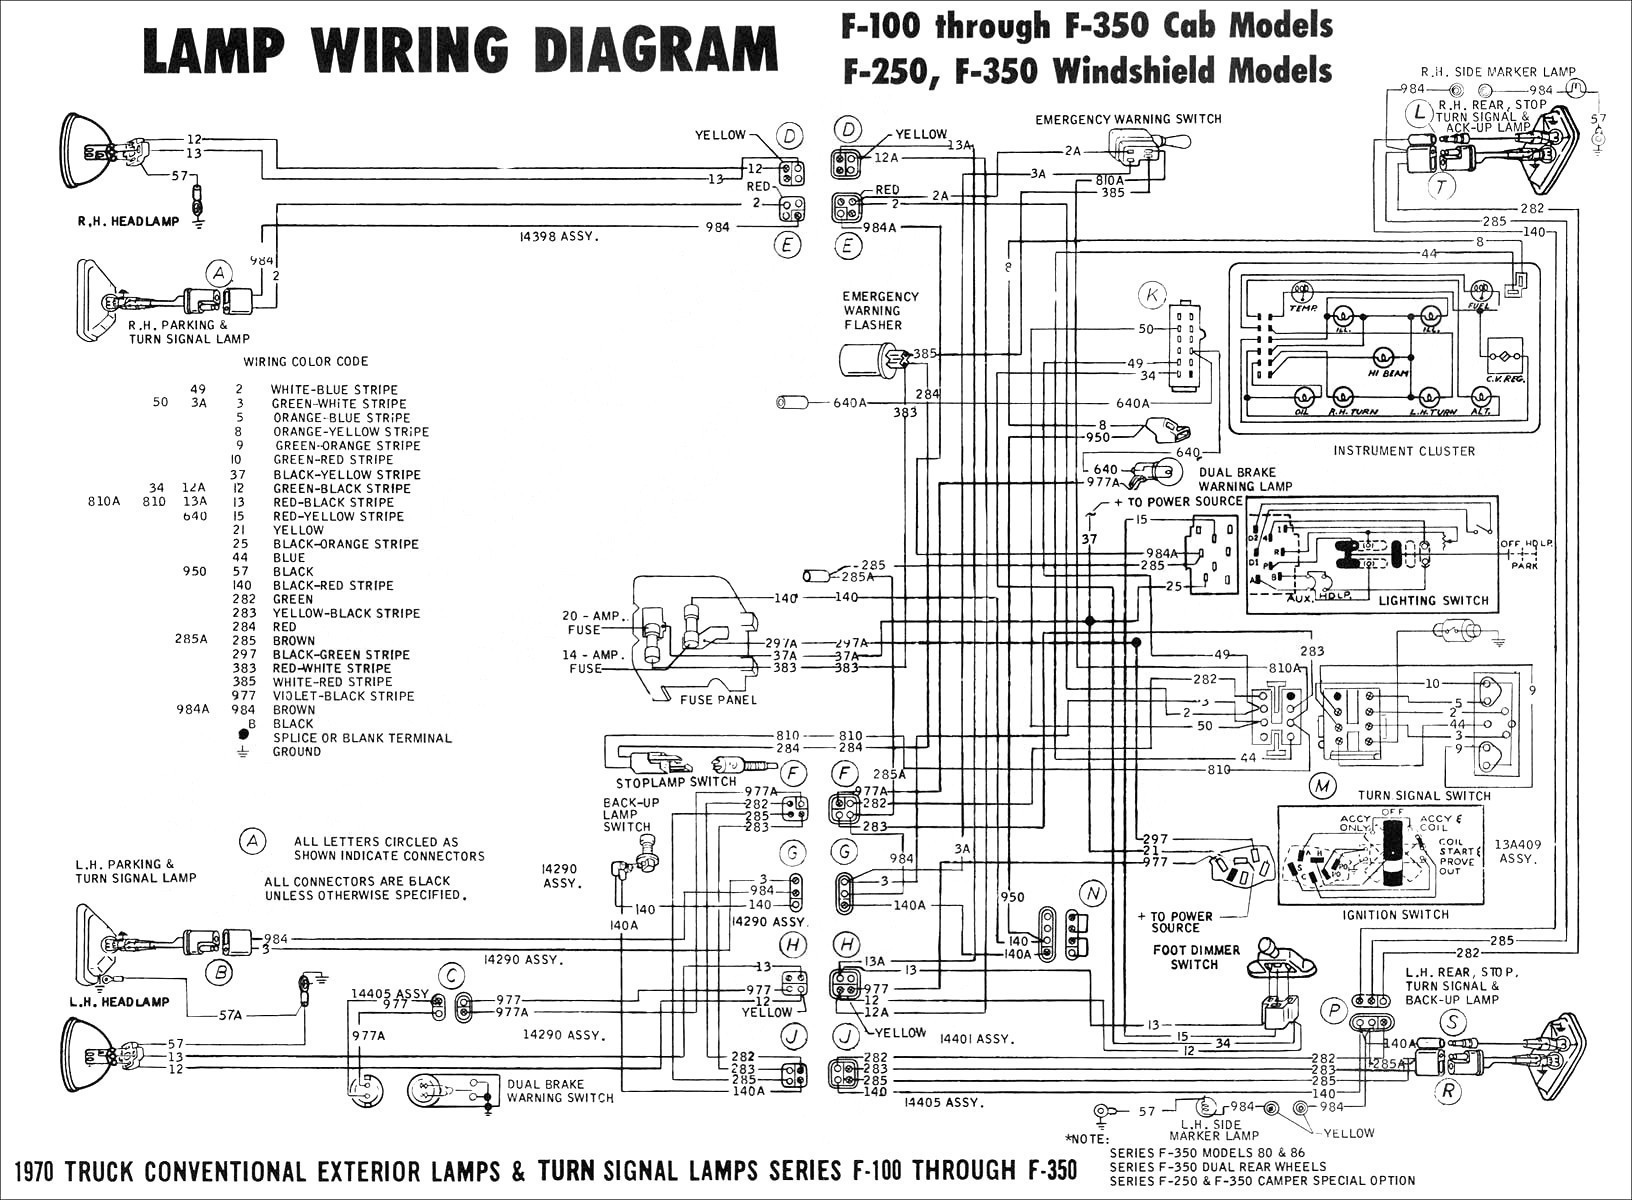 20013toyota rav4 engine diagram  u2022 wiring diagram for free